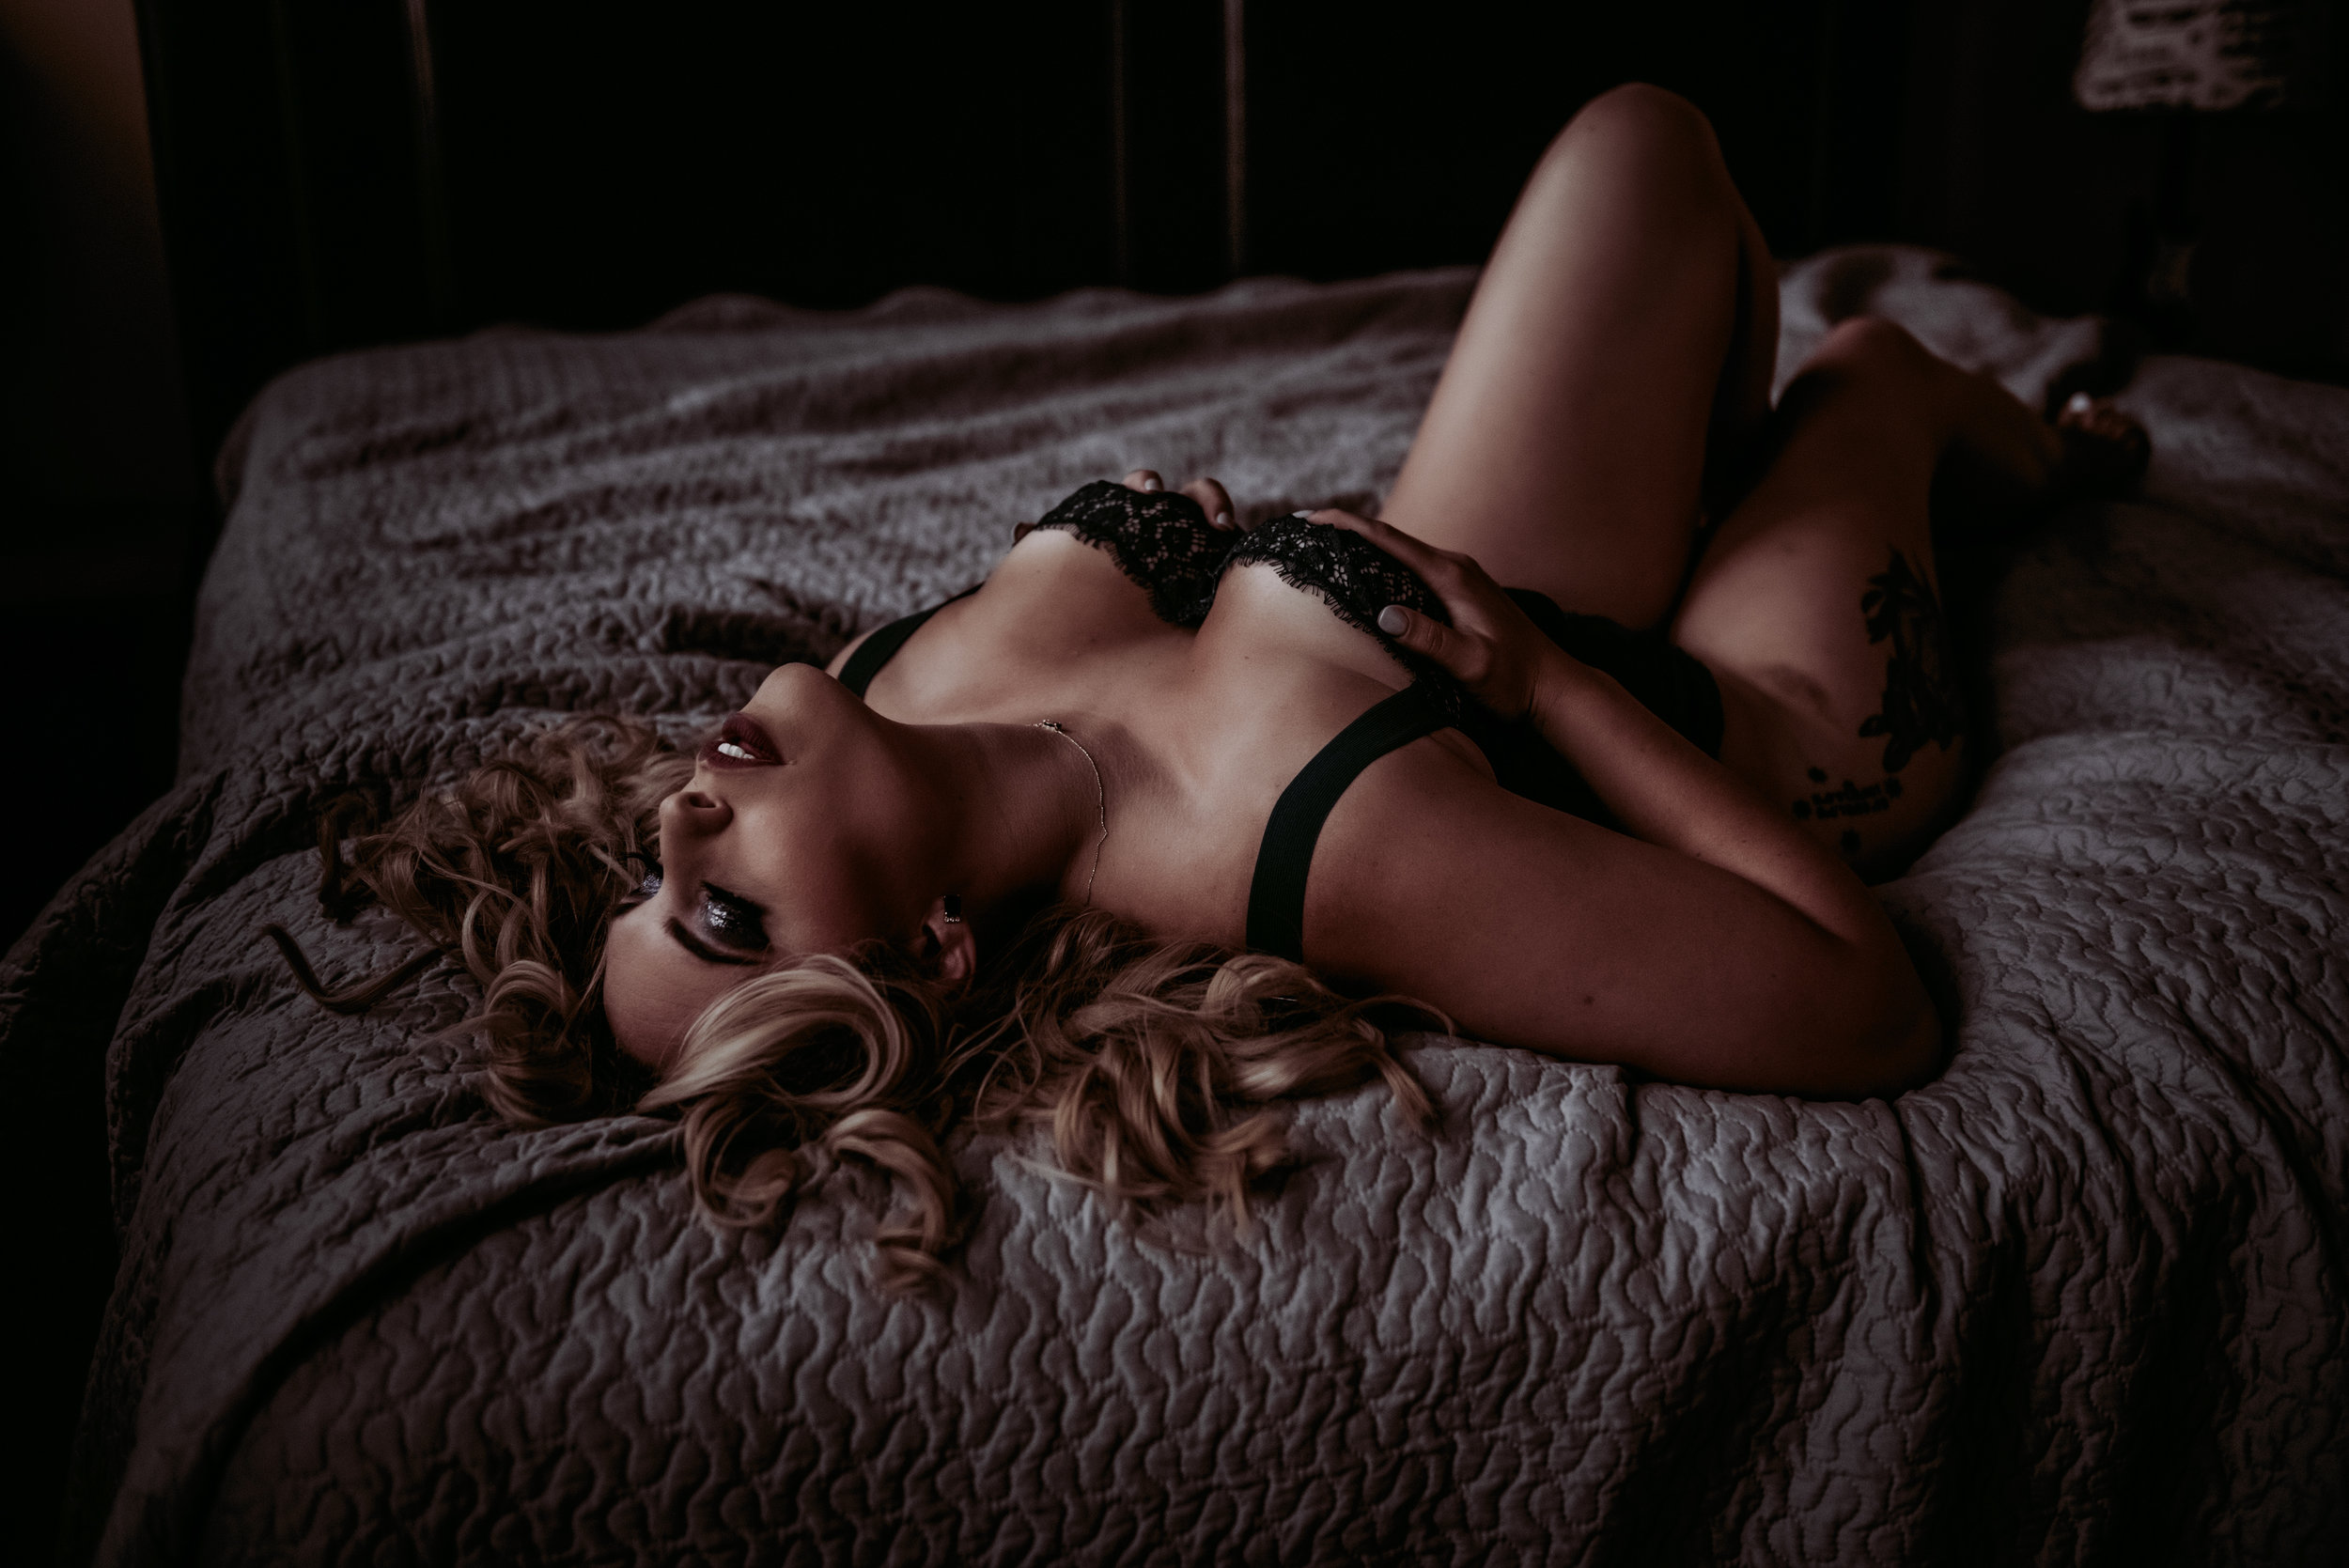 Blonde laying on bed in black body suit boudoir photography new york city studio